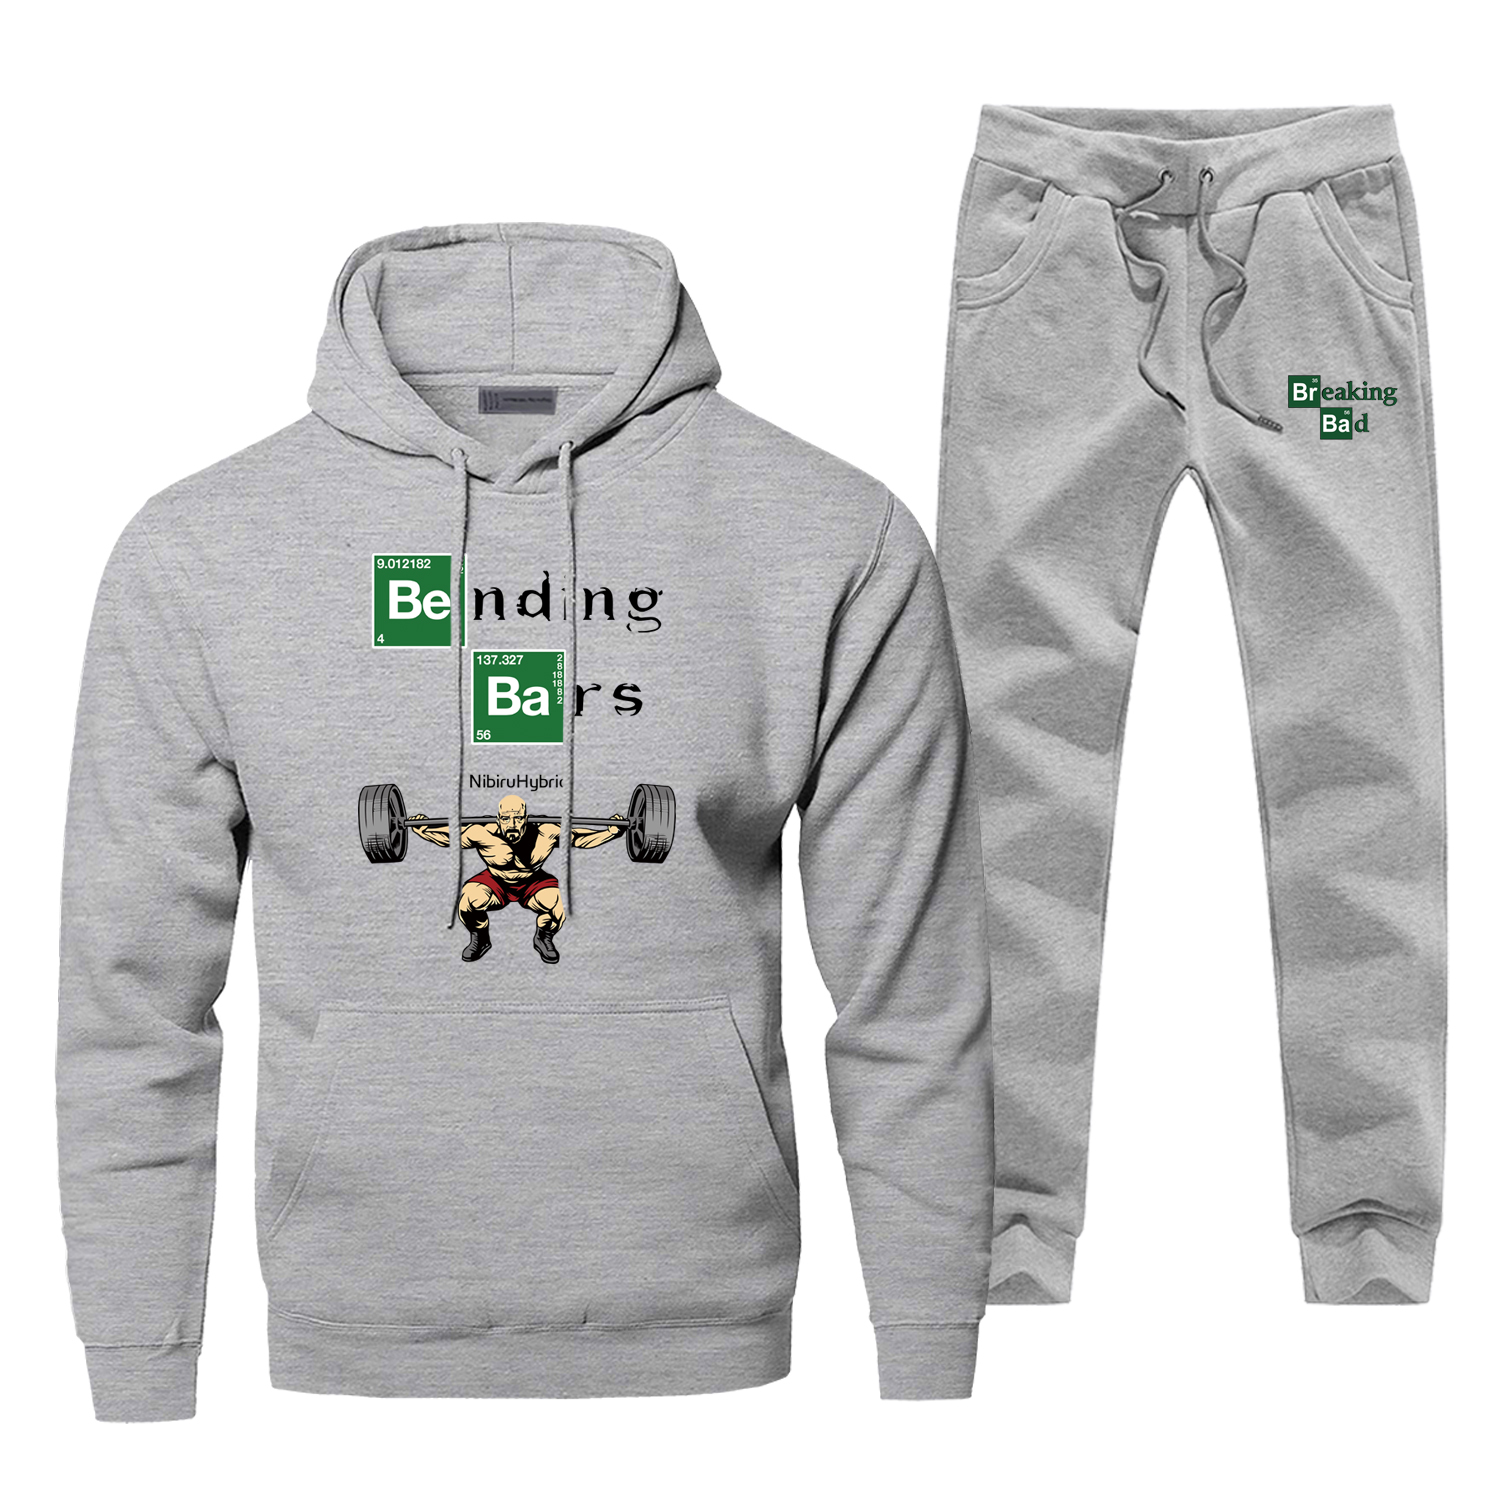 Breaking Bad Casual Men's Sets Motivation High Quality Warm Male Sets Fashion Walter White Gym Funny Men's Full Suit Tracksuit